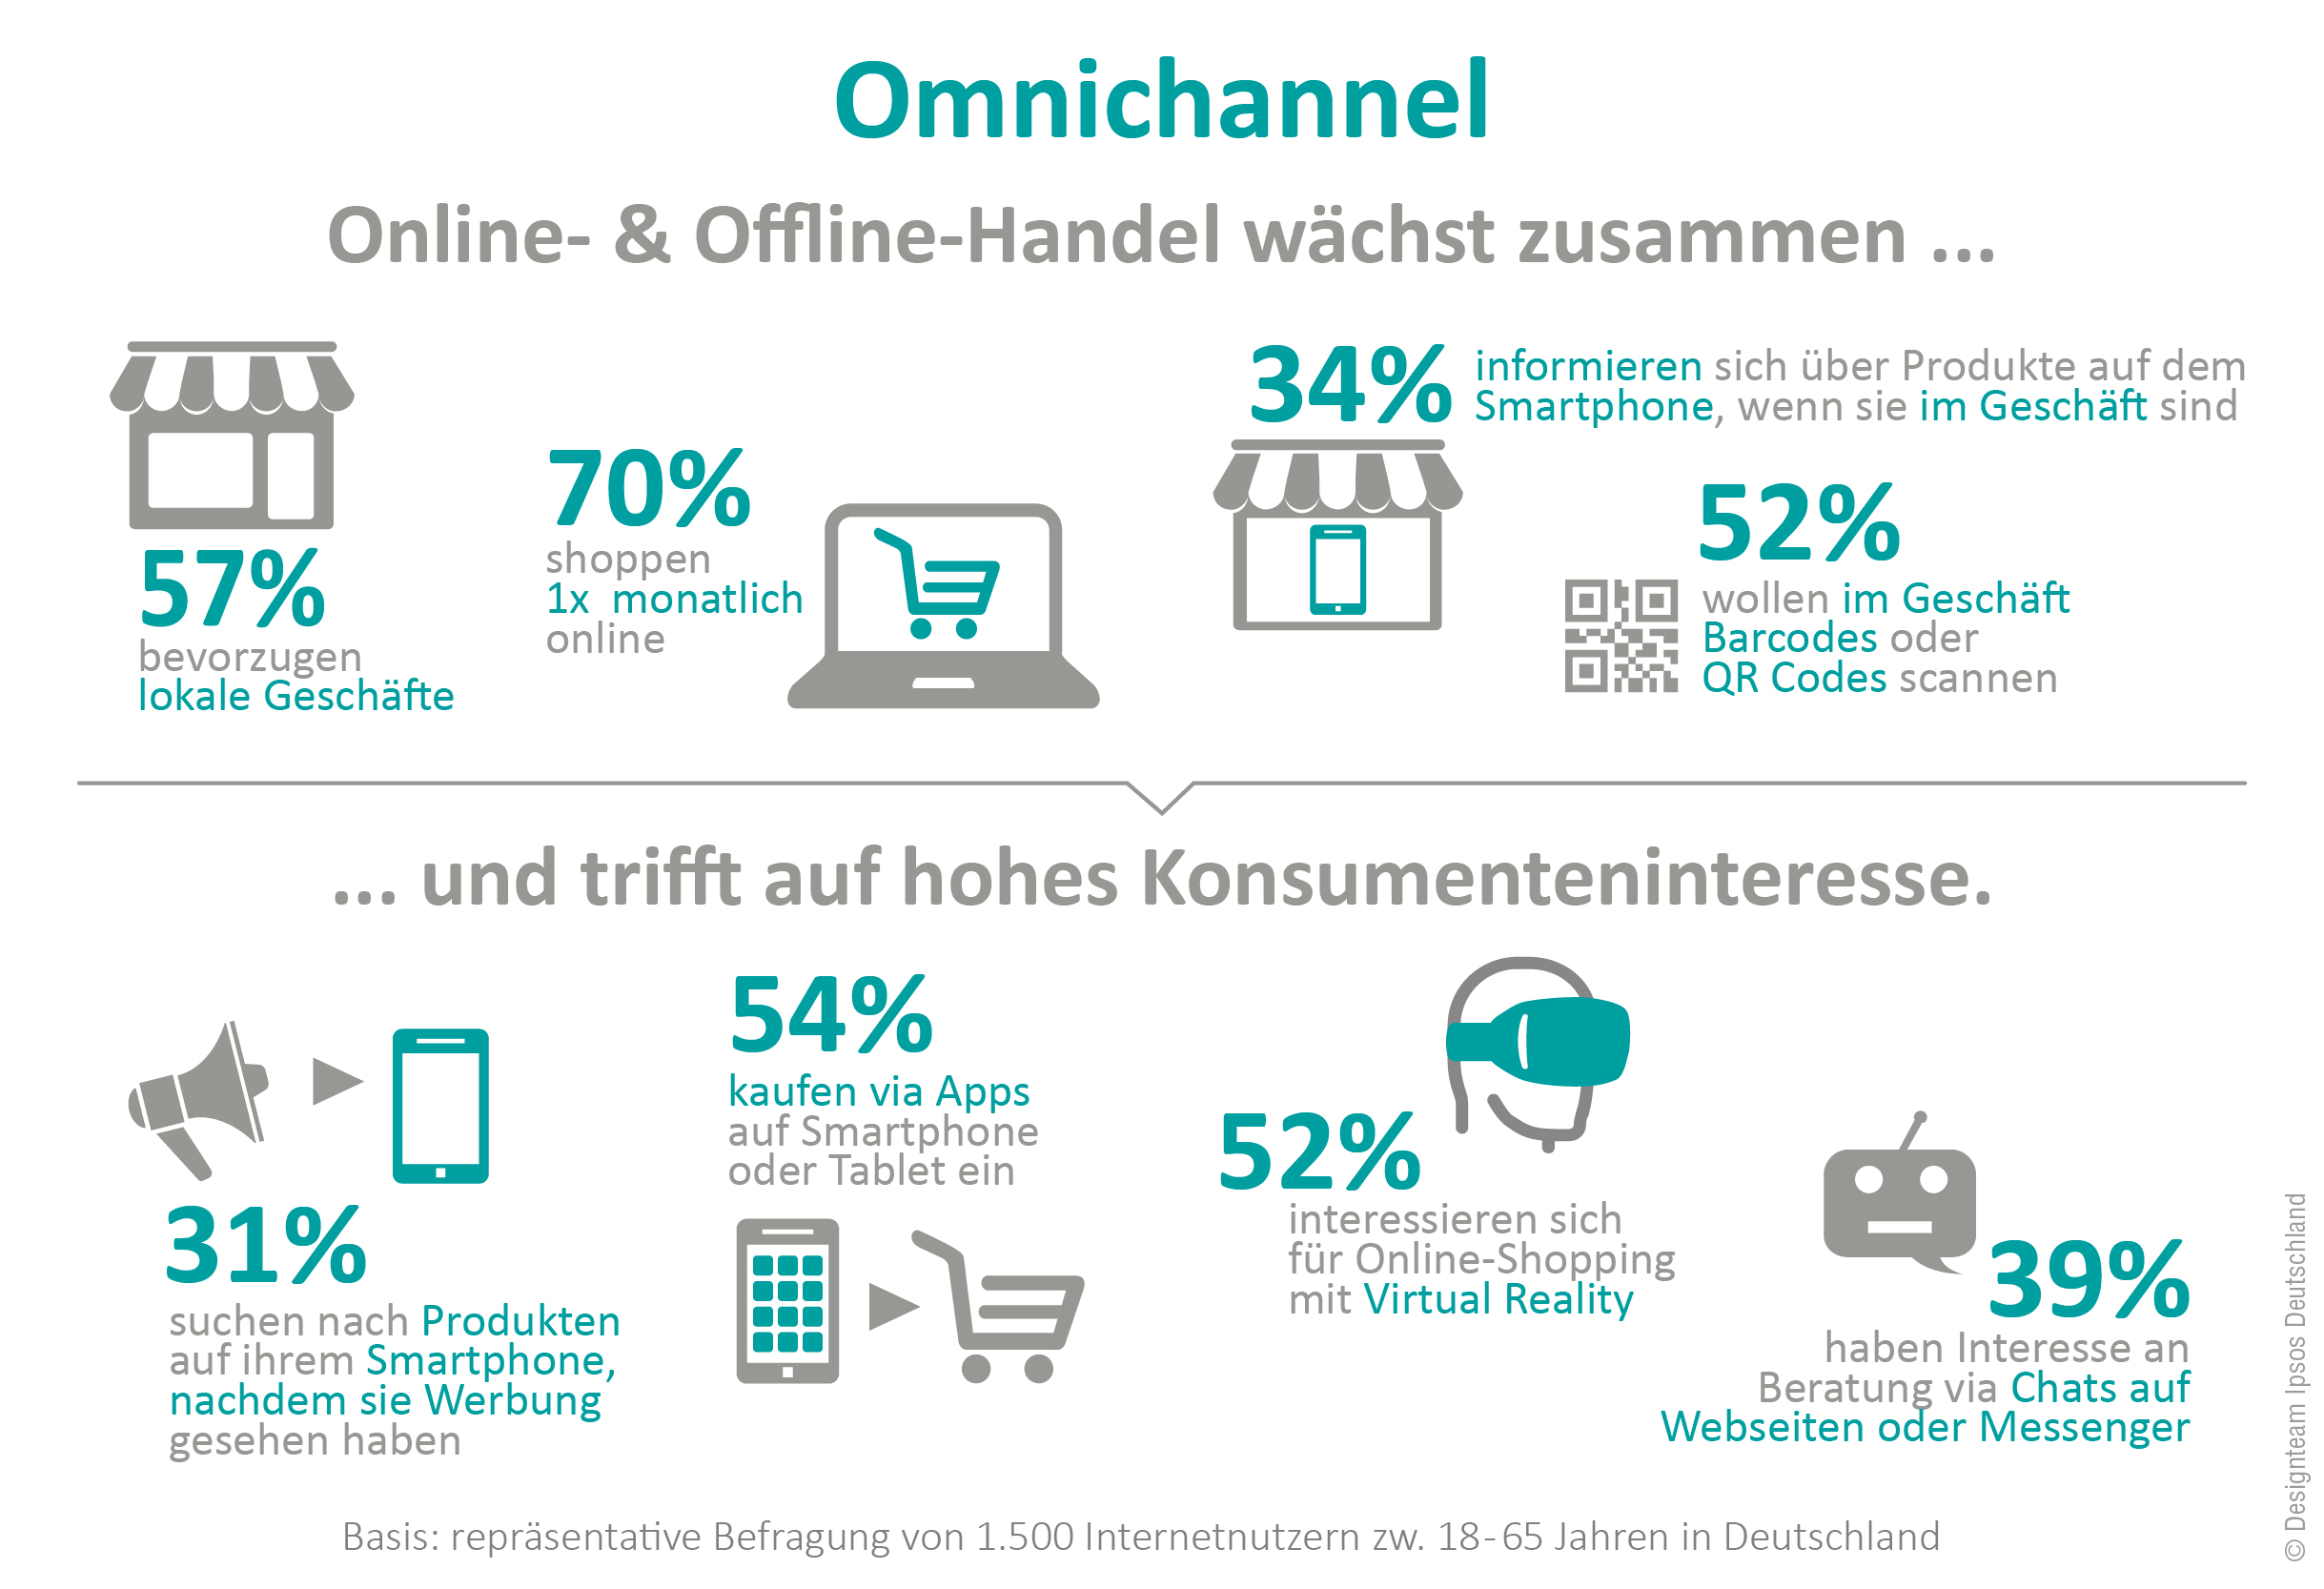 Omnichannel: stationärer Handel und E-Commerce verschmilzt